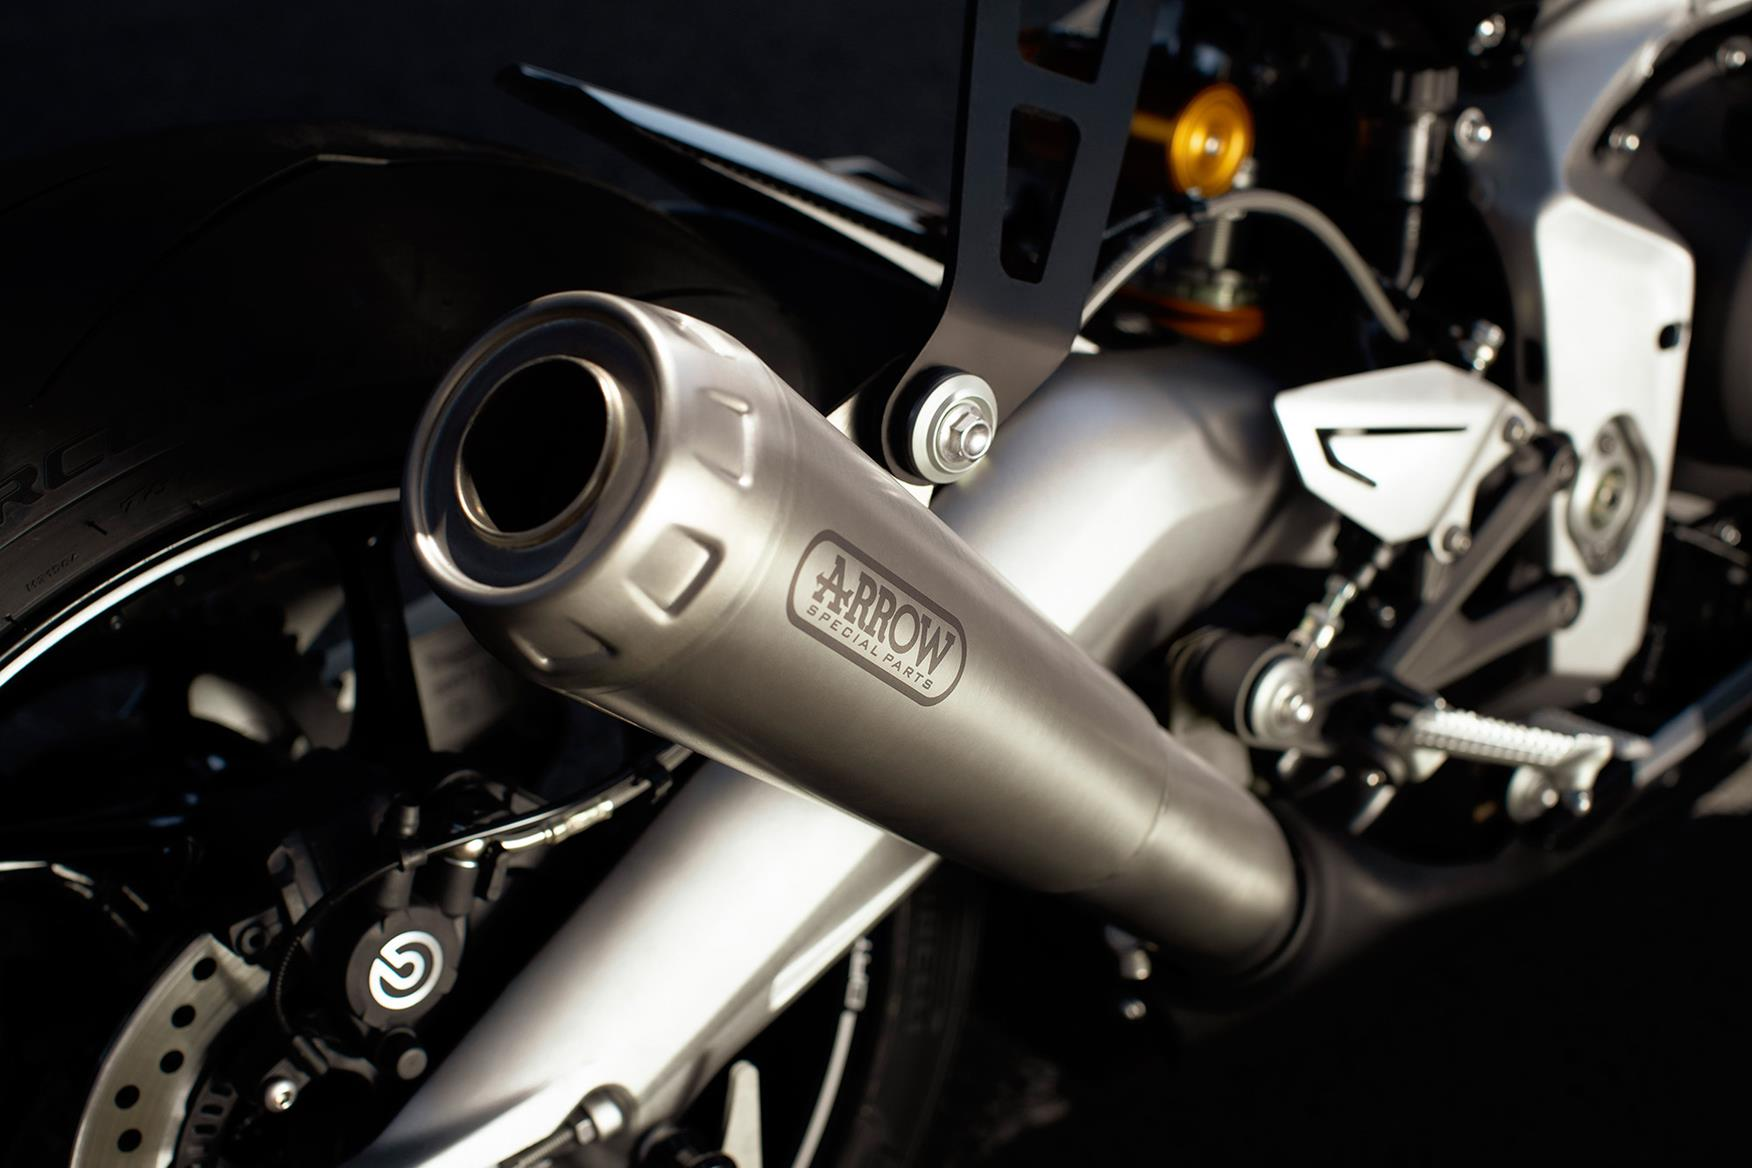 Triumph Daytona 765 Moto2 Limited Edition exhaust